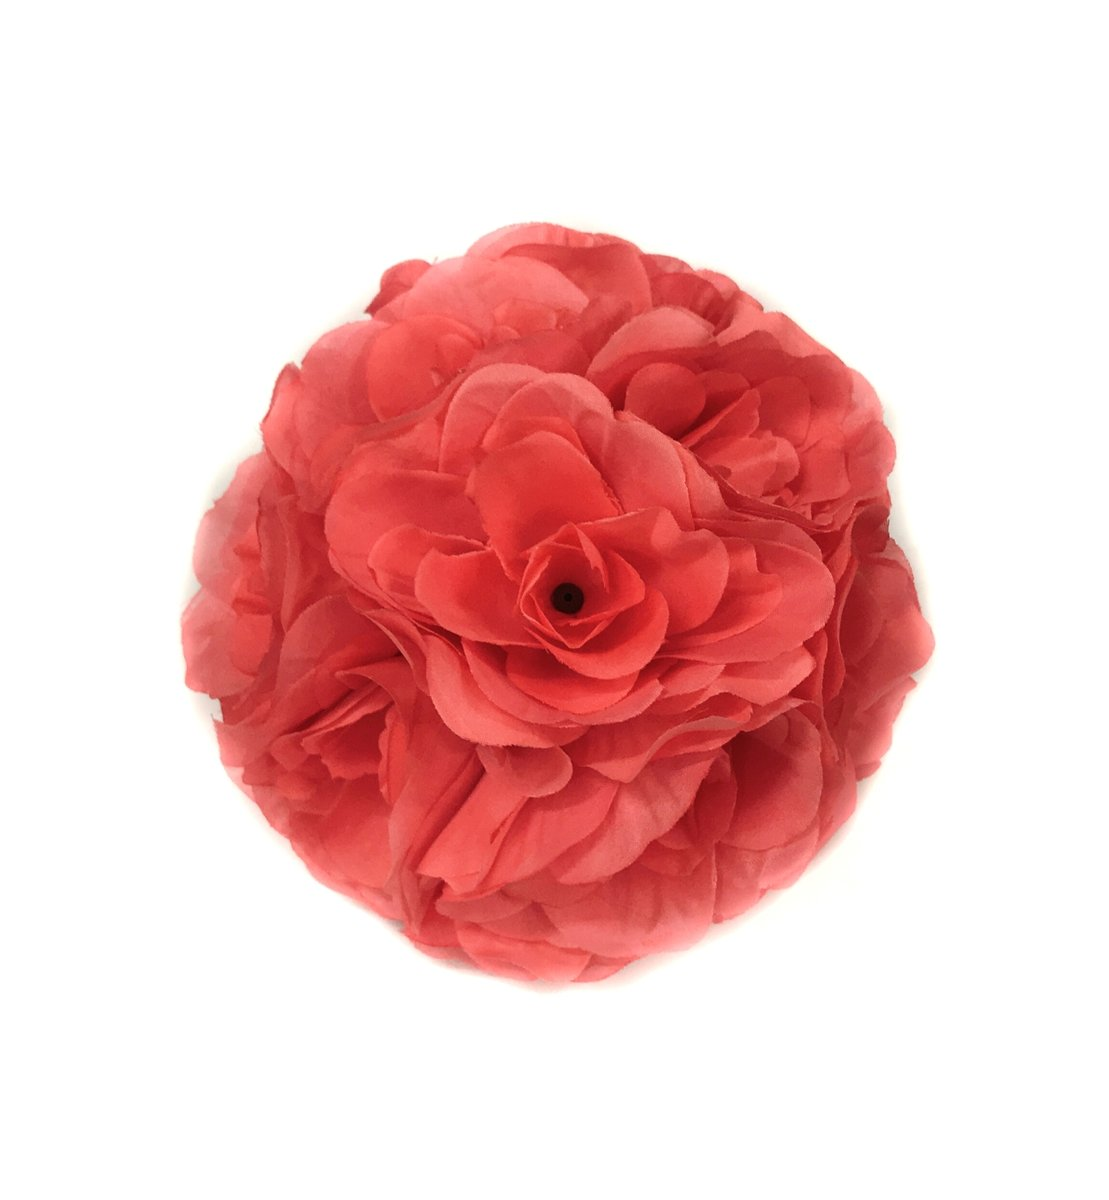 Ben-Collection-10-Pack-of-Fabric-Artificial-Flowers-Silk-Rose-Pomander-Wedding-Party-Home-Decoration-Kissing-Ball-Trendy-Color-Simulation-Flower-Coral-20cm